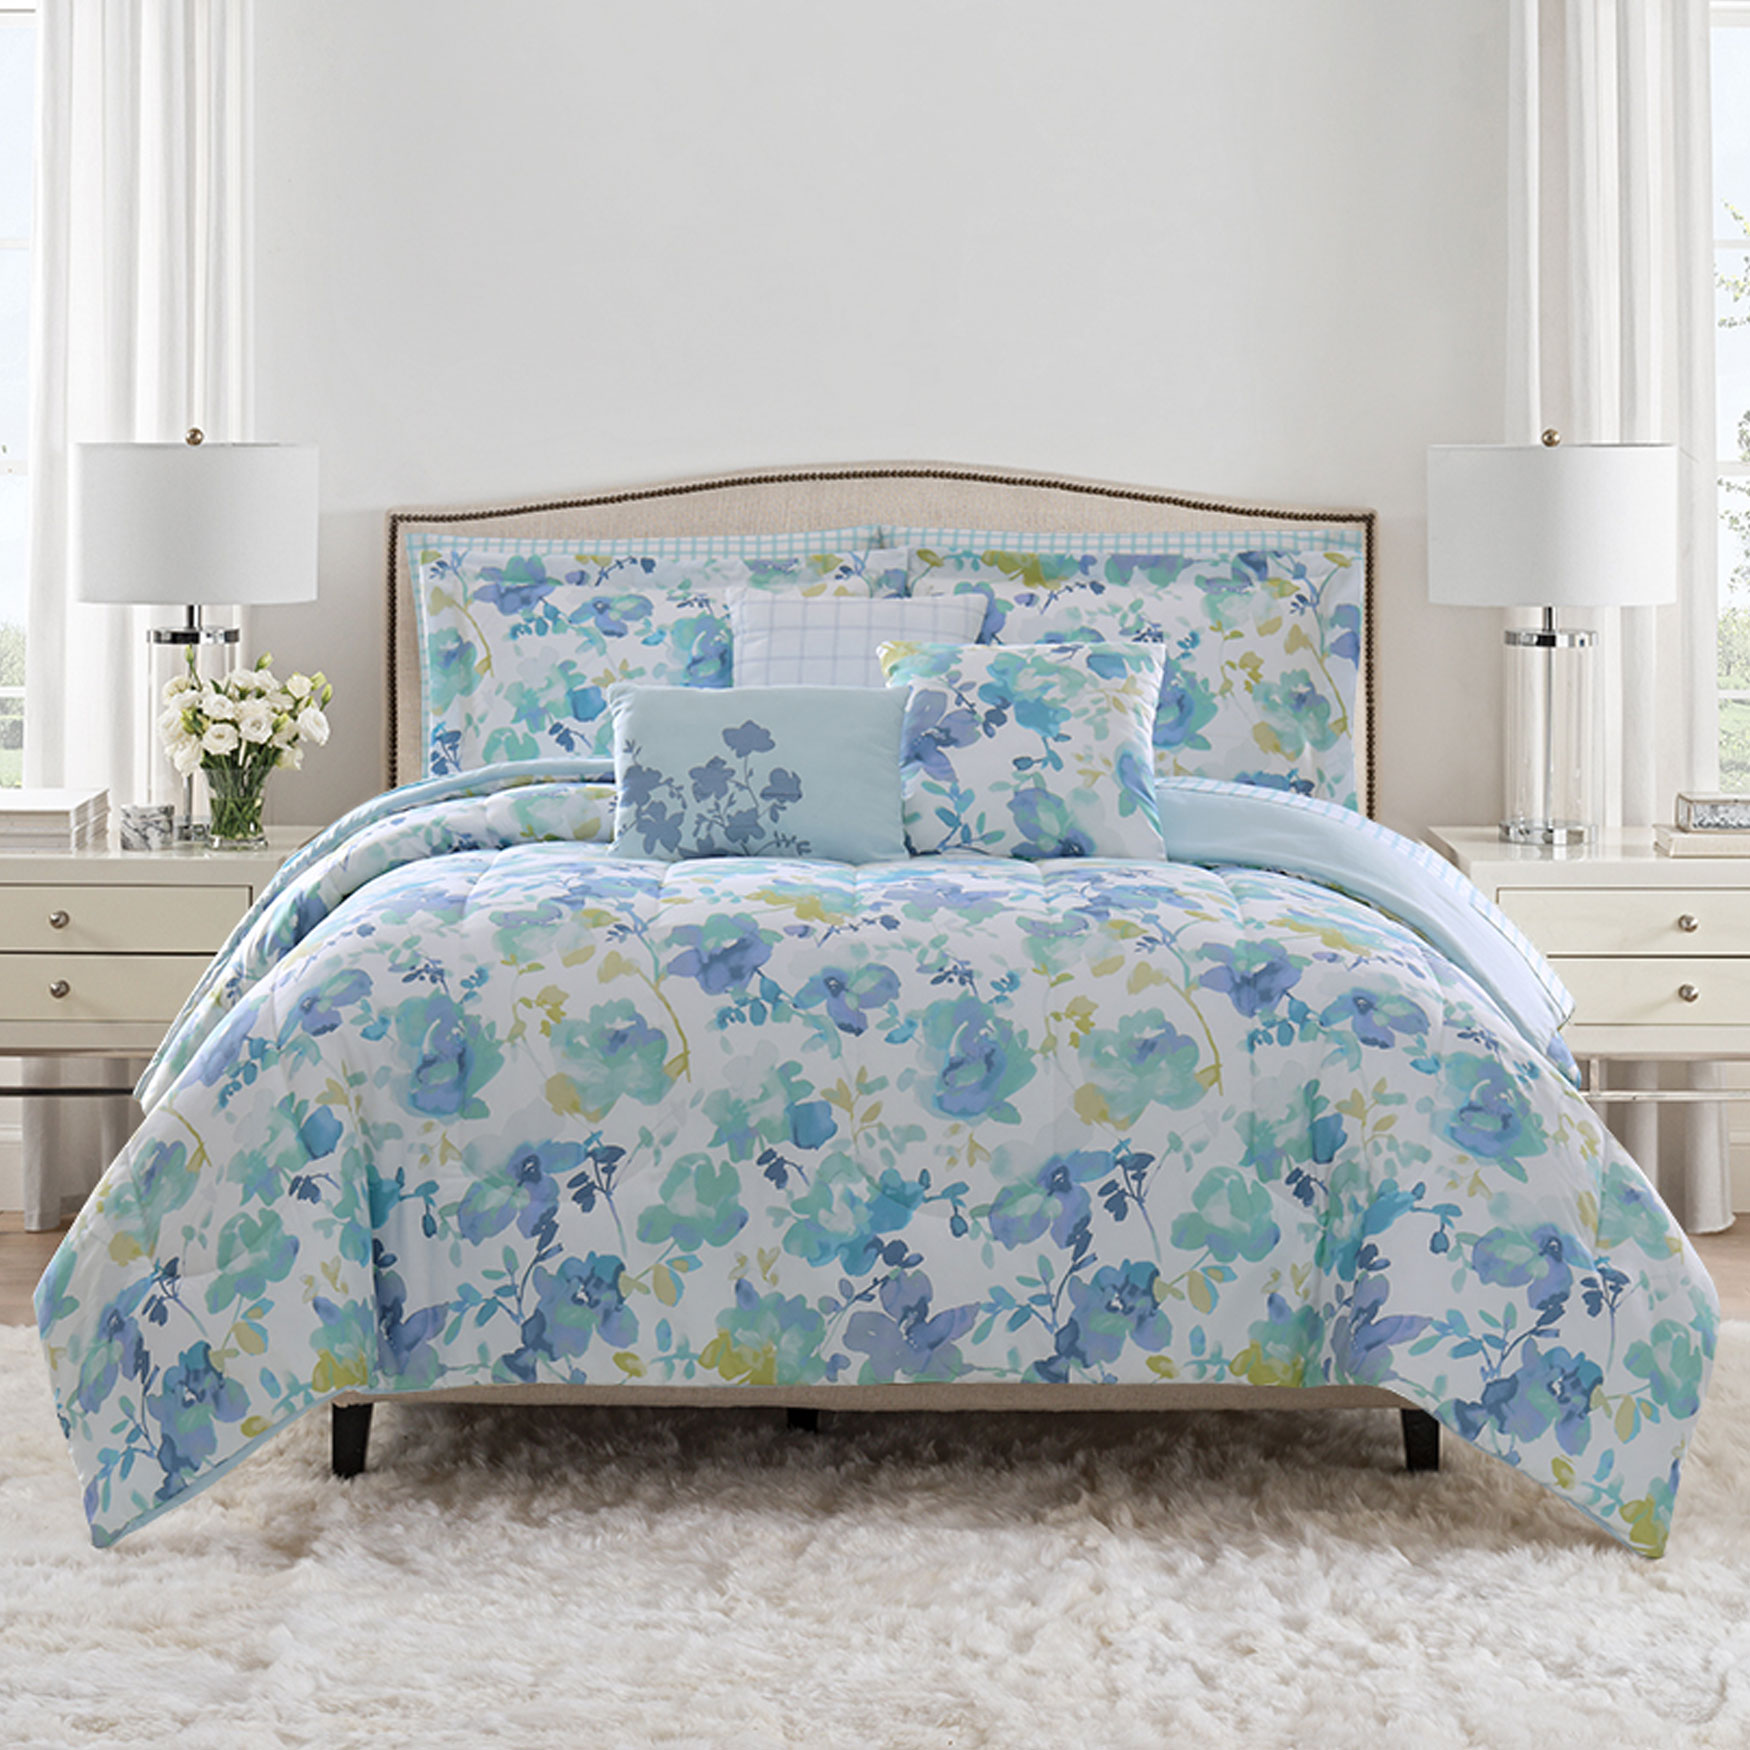 Kaley 10-Pc. Bed In A Bag Set,